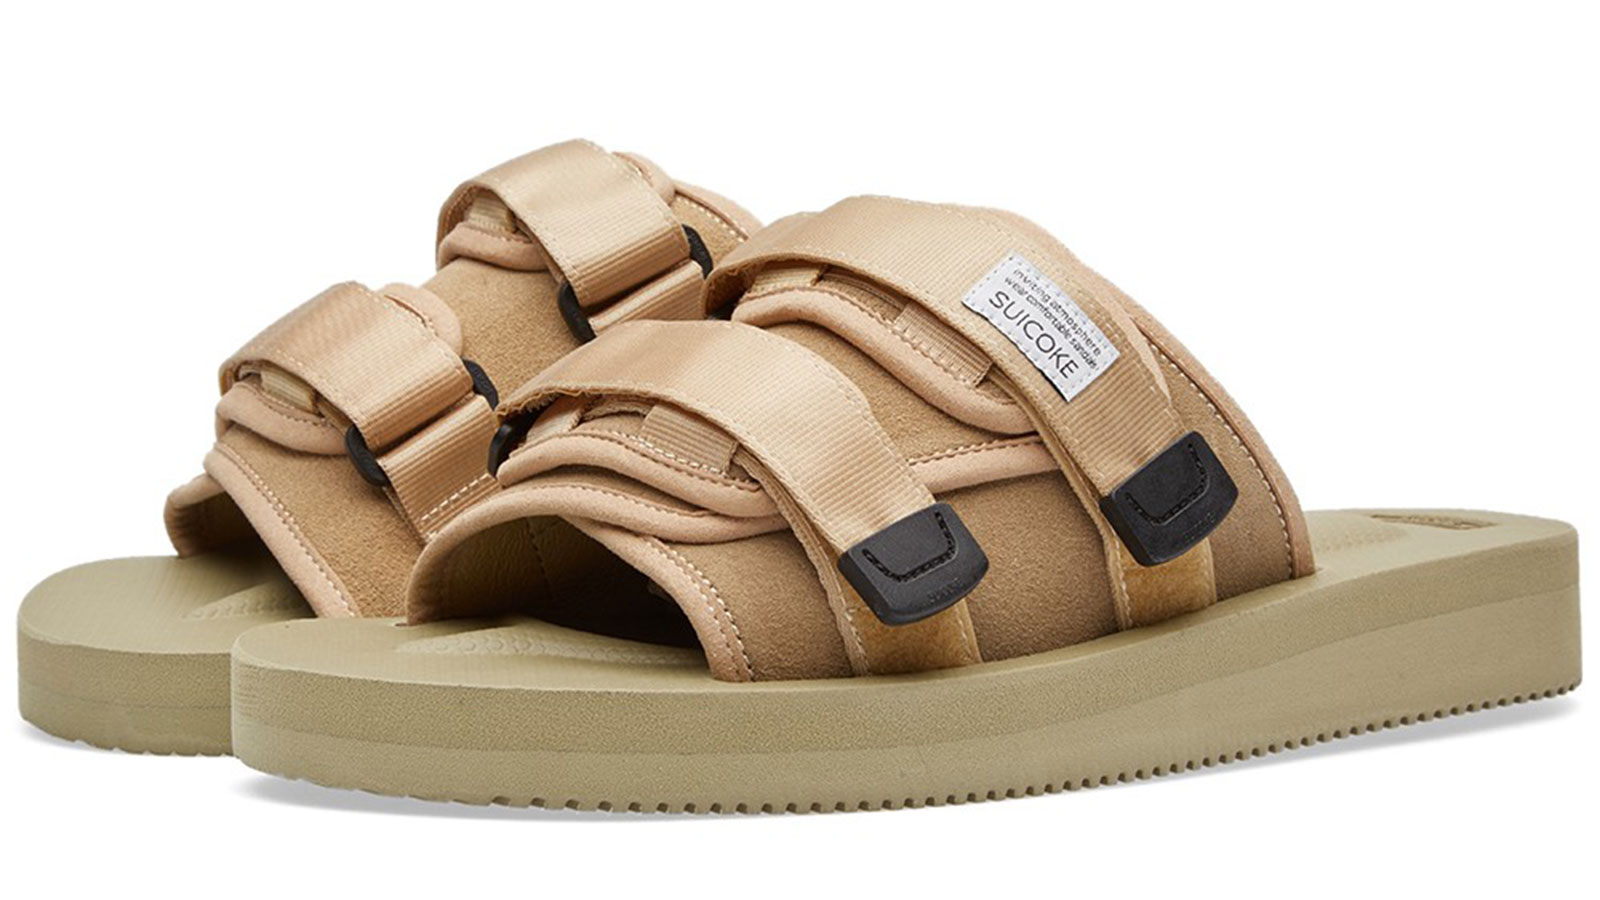 Suicoke Moto VS best sandals for men